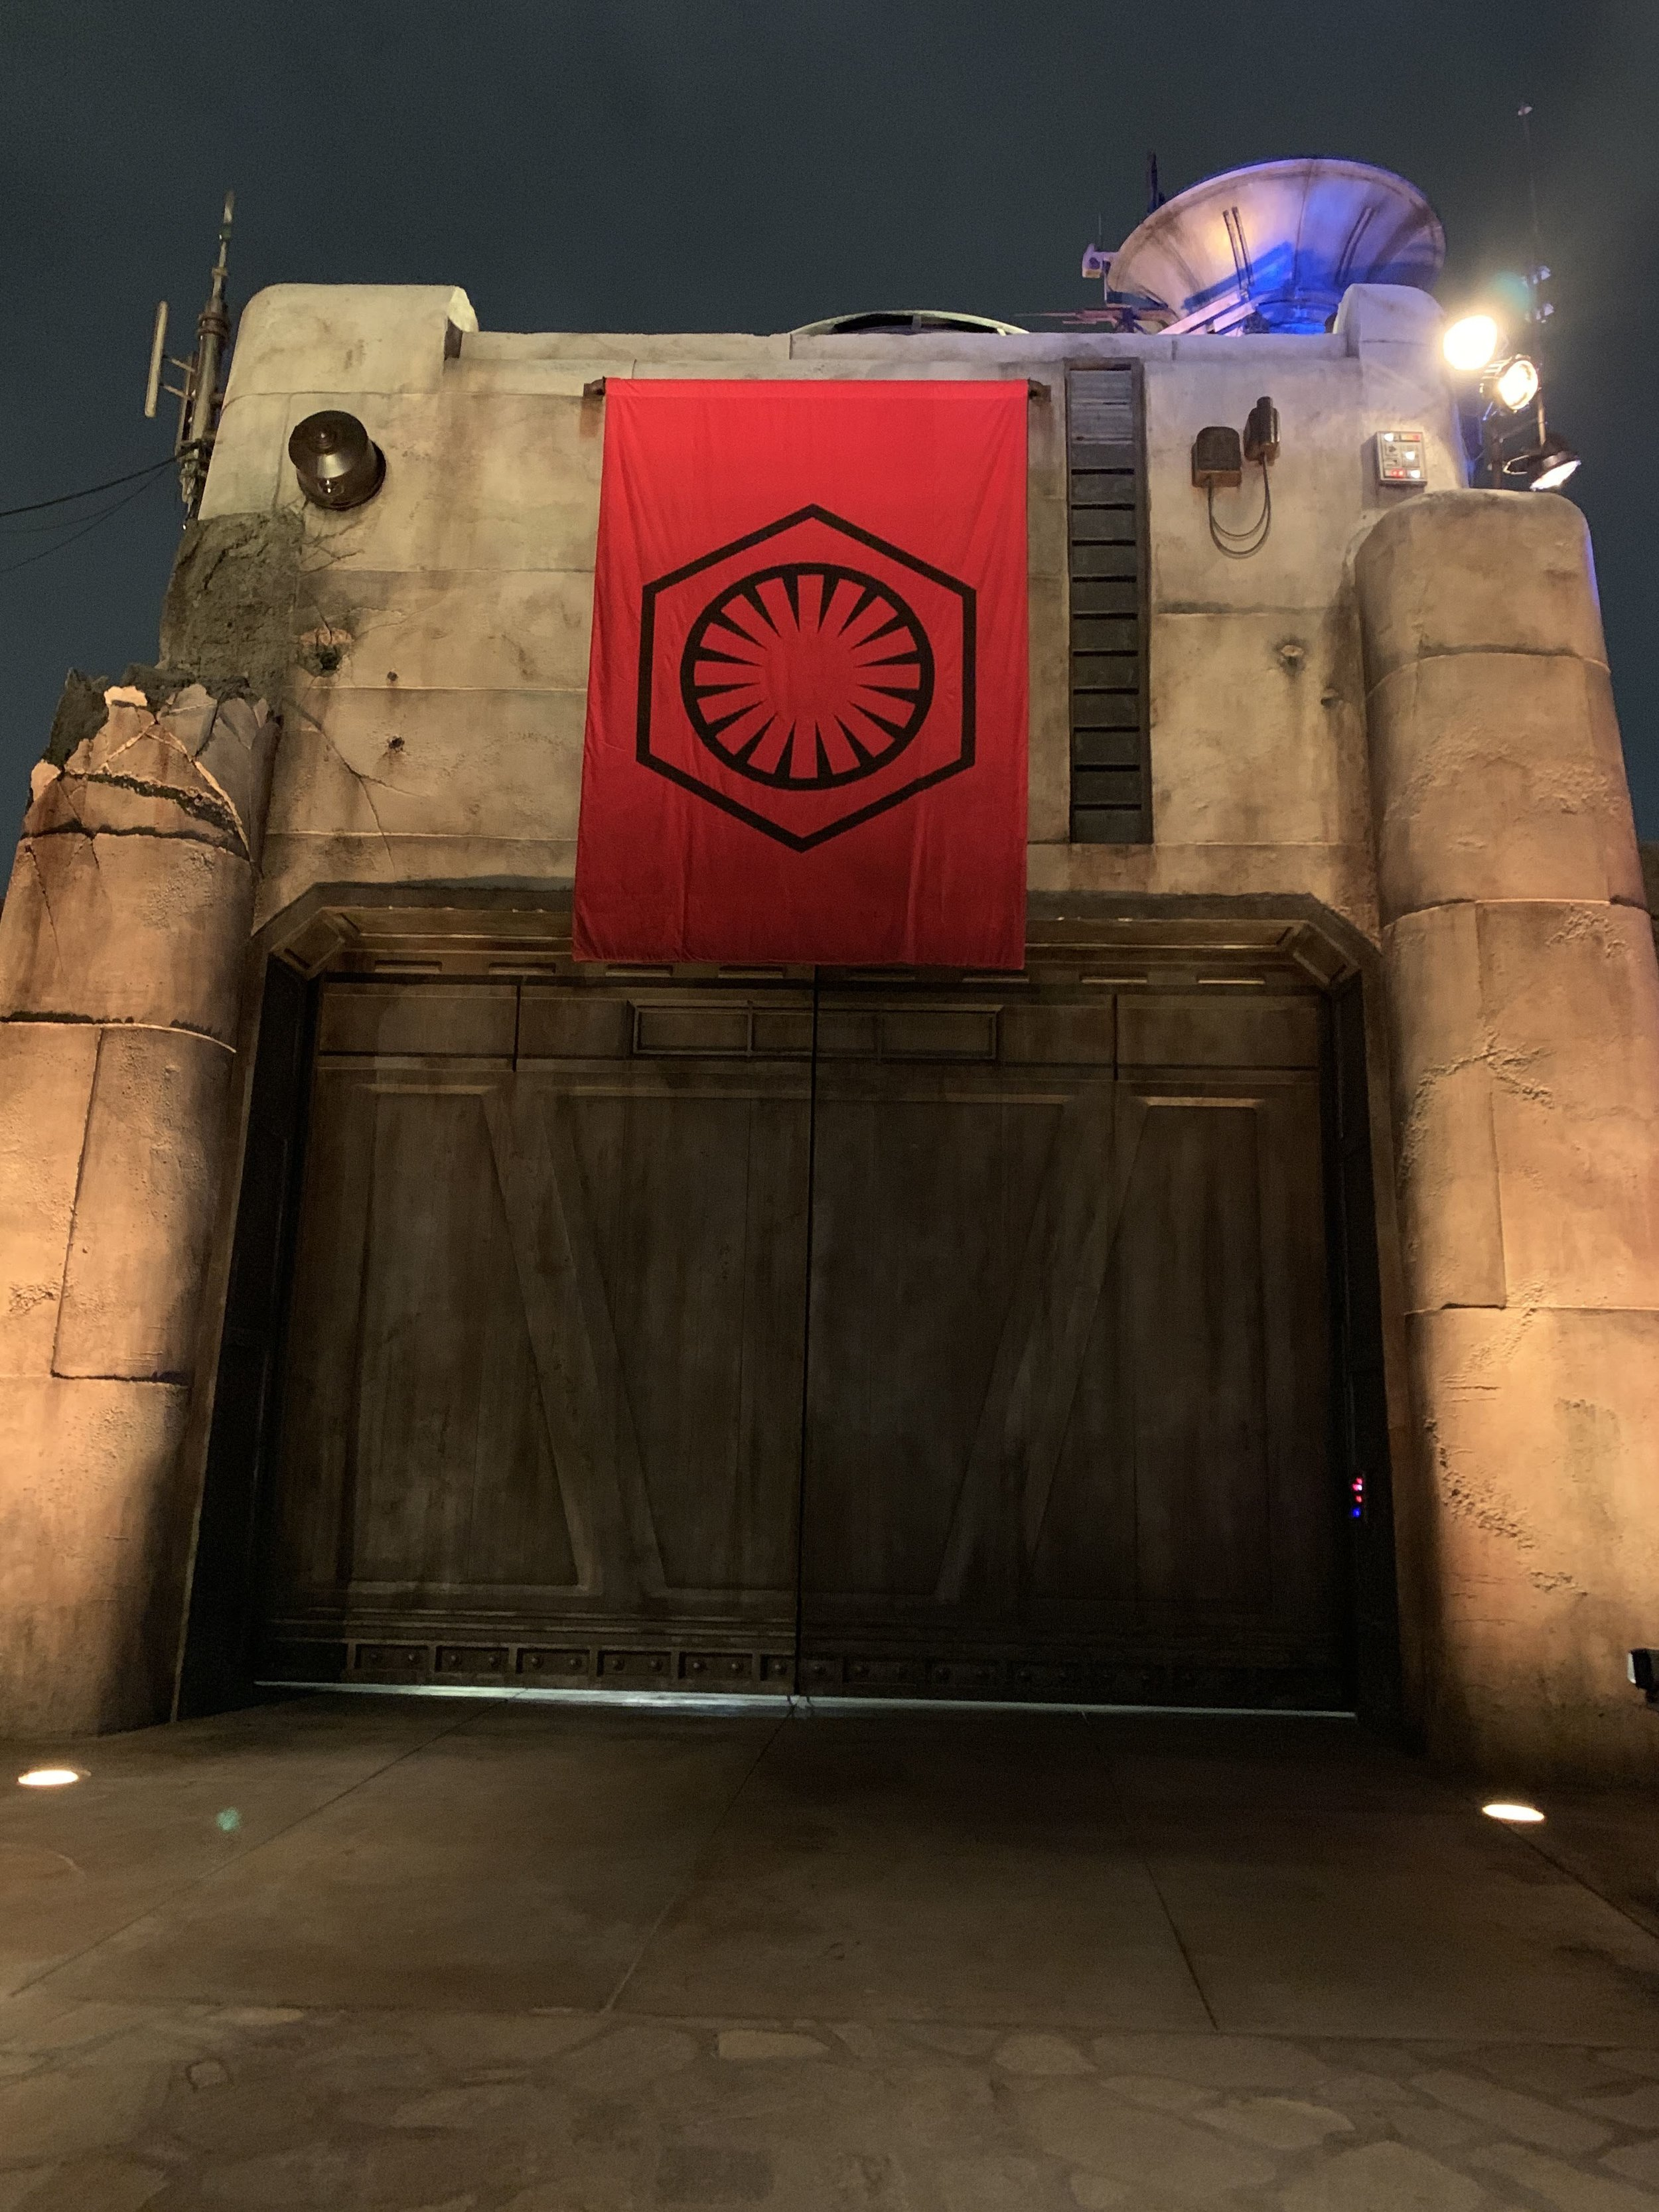 The First Order's base